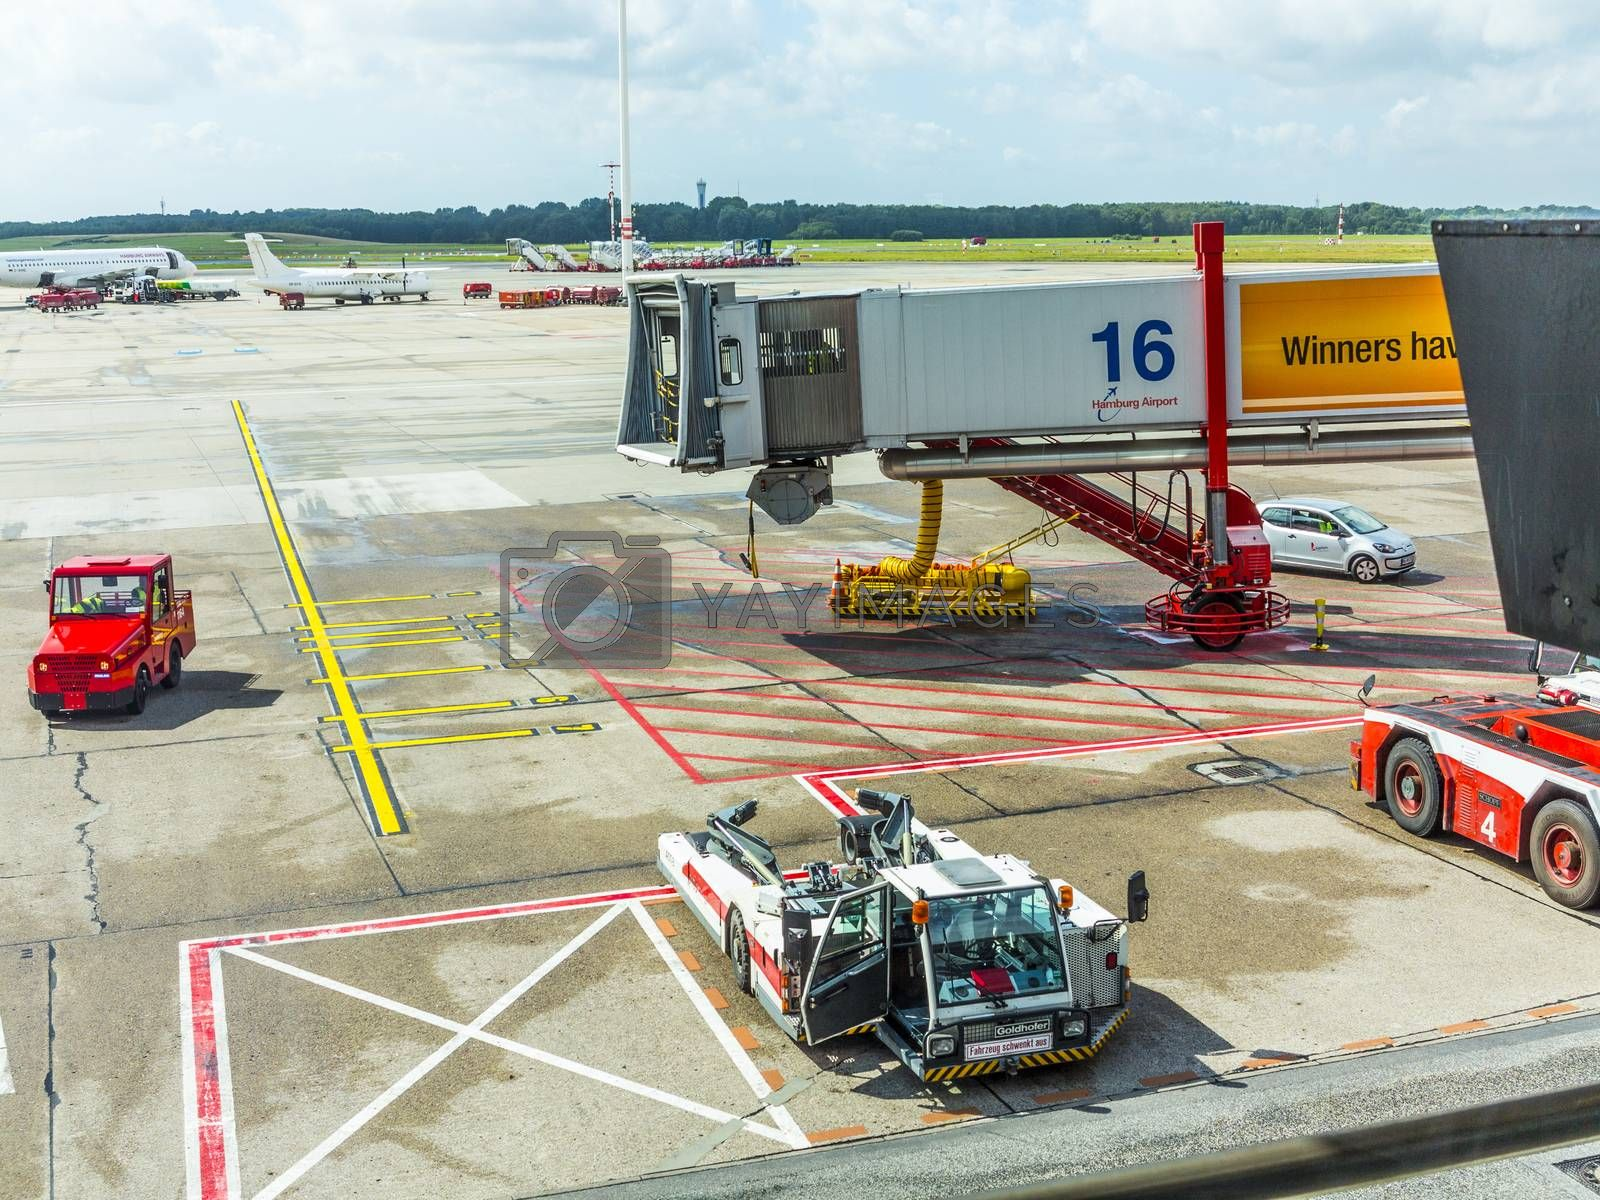 HAMBURG, GERMANY - AUGUST 16: Aircraft at the gate in Terminal 2 on August 16, 2012 in Hamburg, Germany. Terminal 2 was completed in 1993 and houses Lufthansa and other Star Alliance partners.